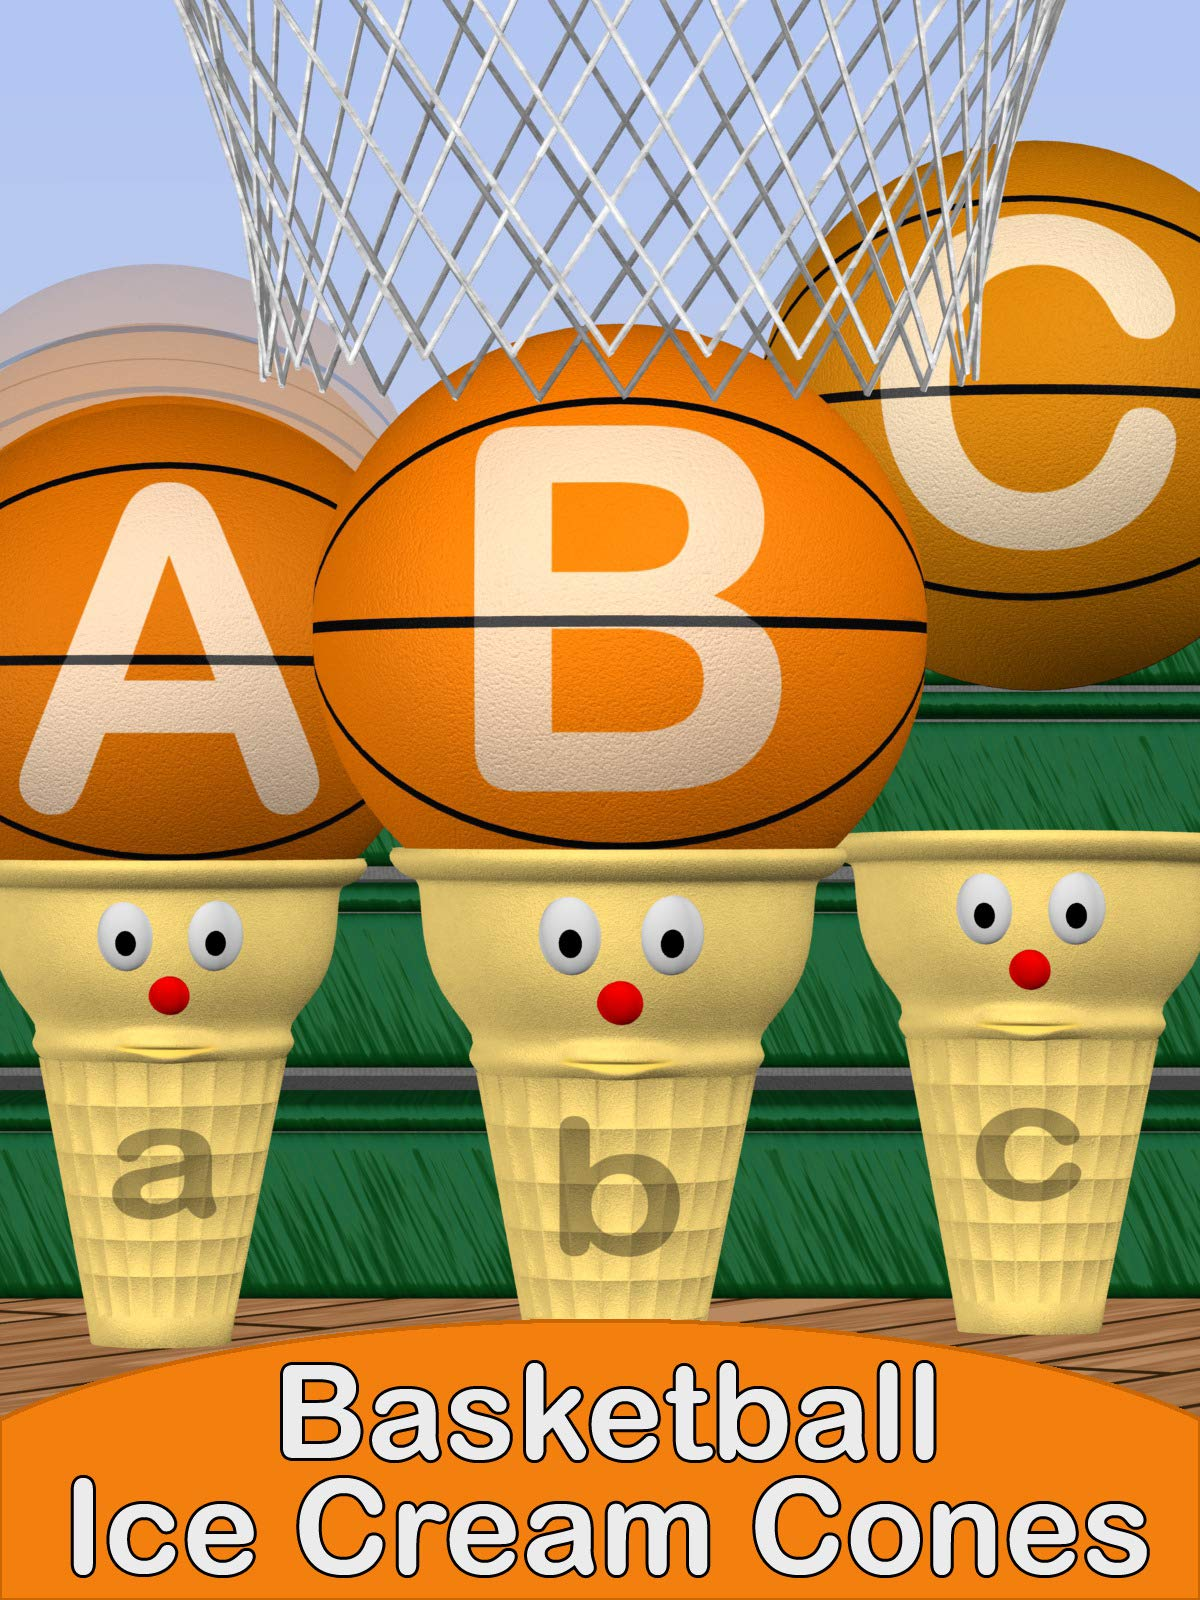 ABC Basketball Ice Cream Cones